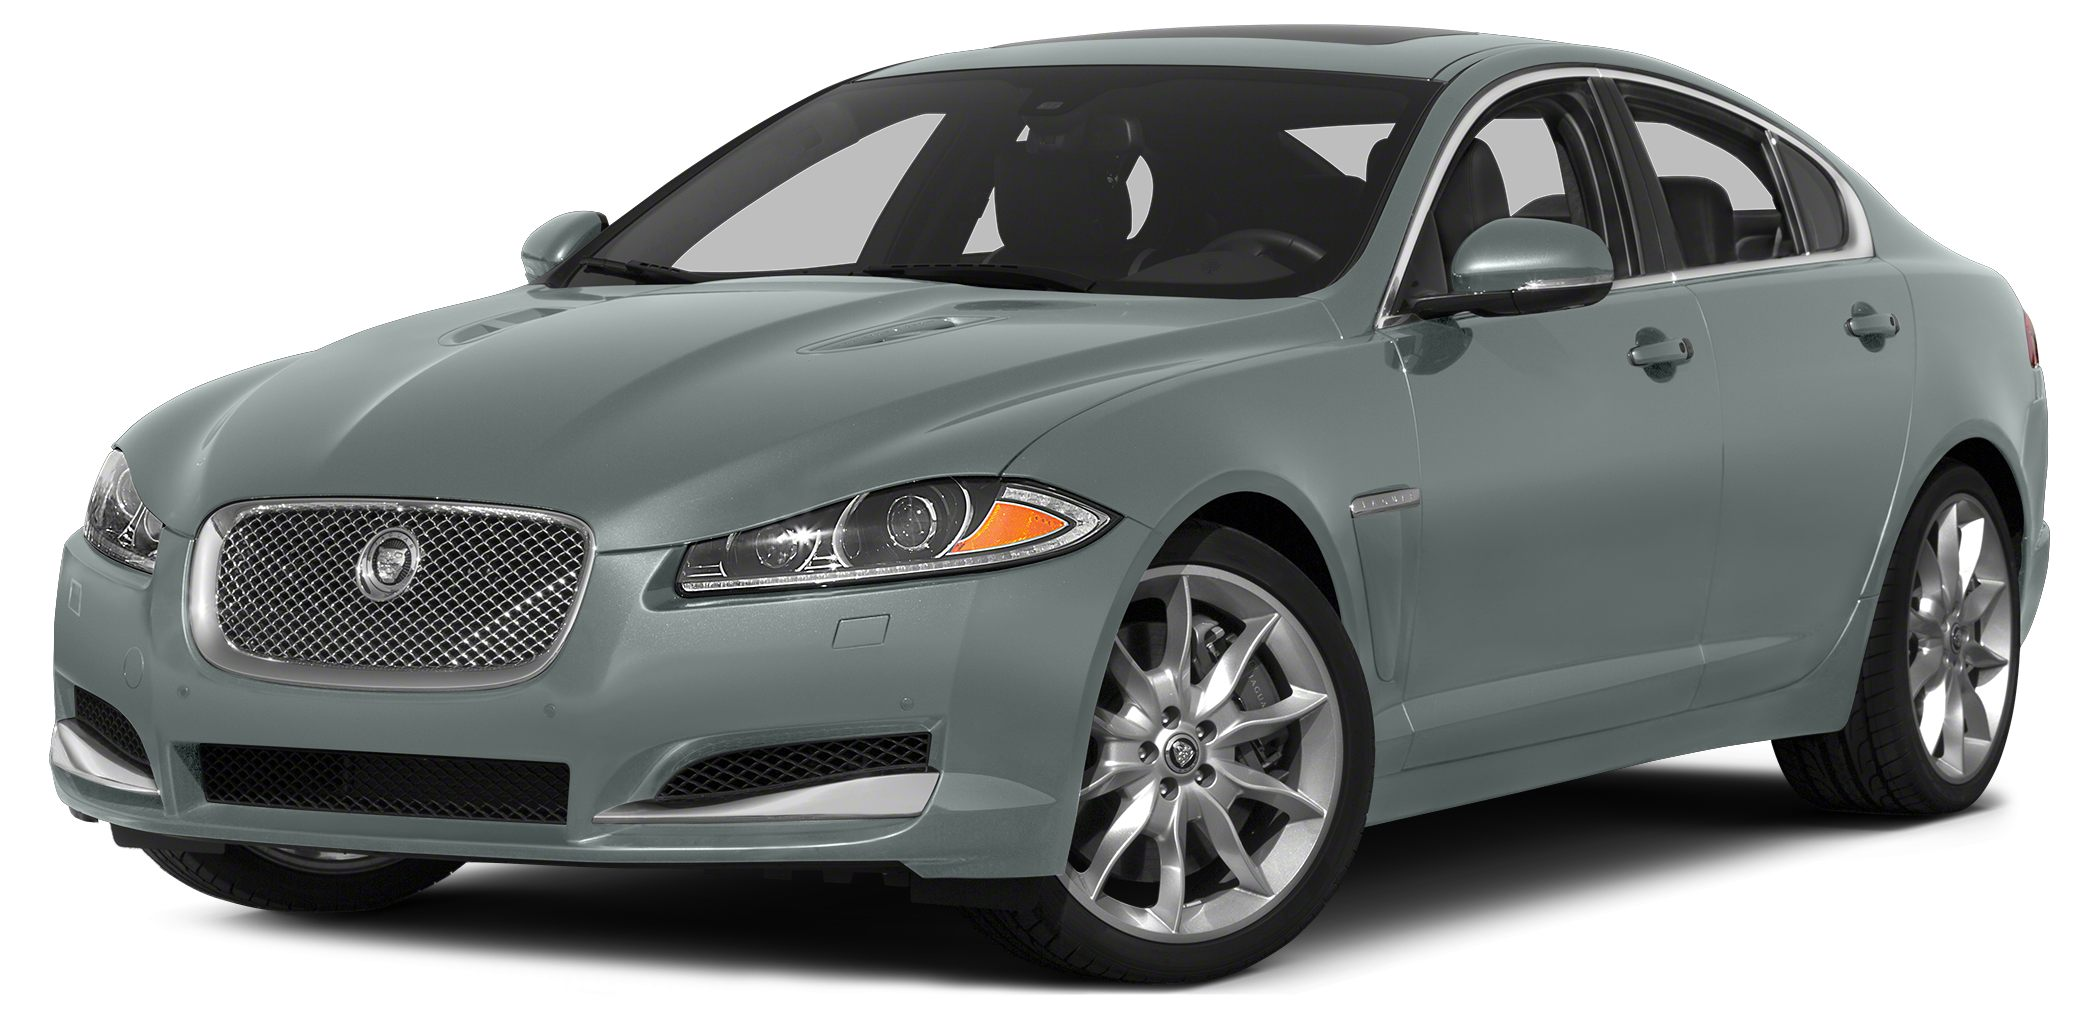 2014 Jaguar XF V6 SC Super clean XF AWD sedan Full CPO warranty V6 340 HP This has it all Nav